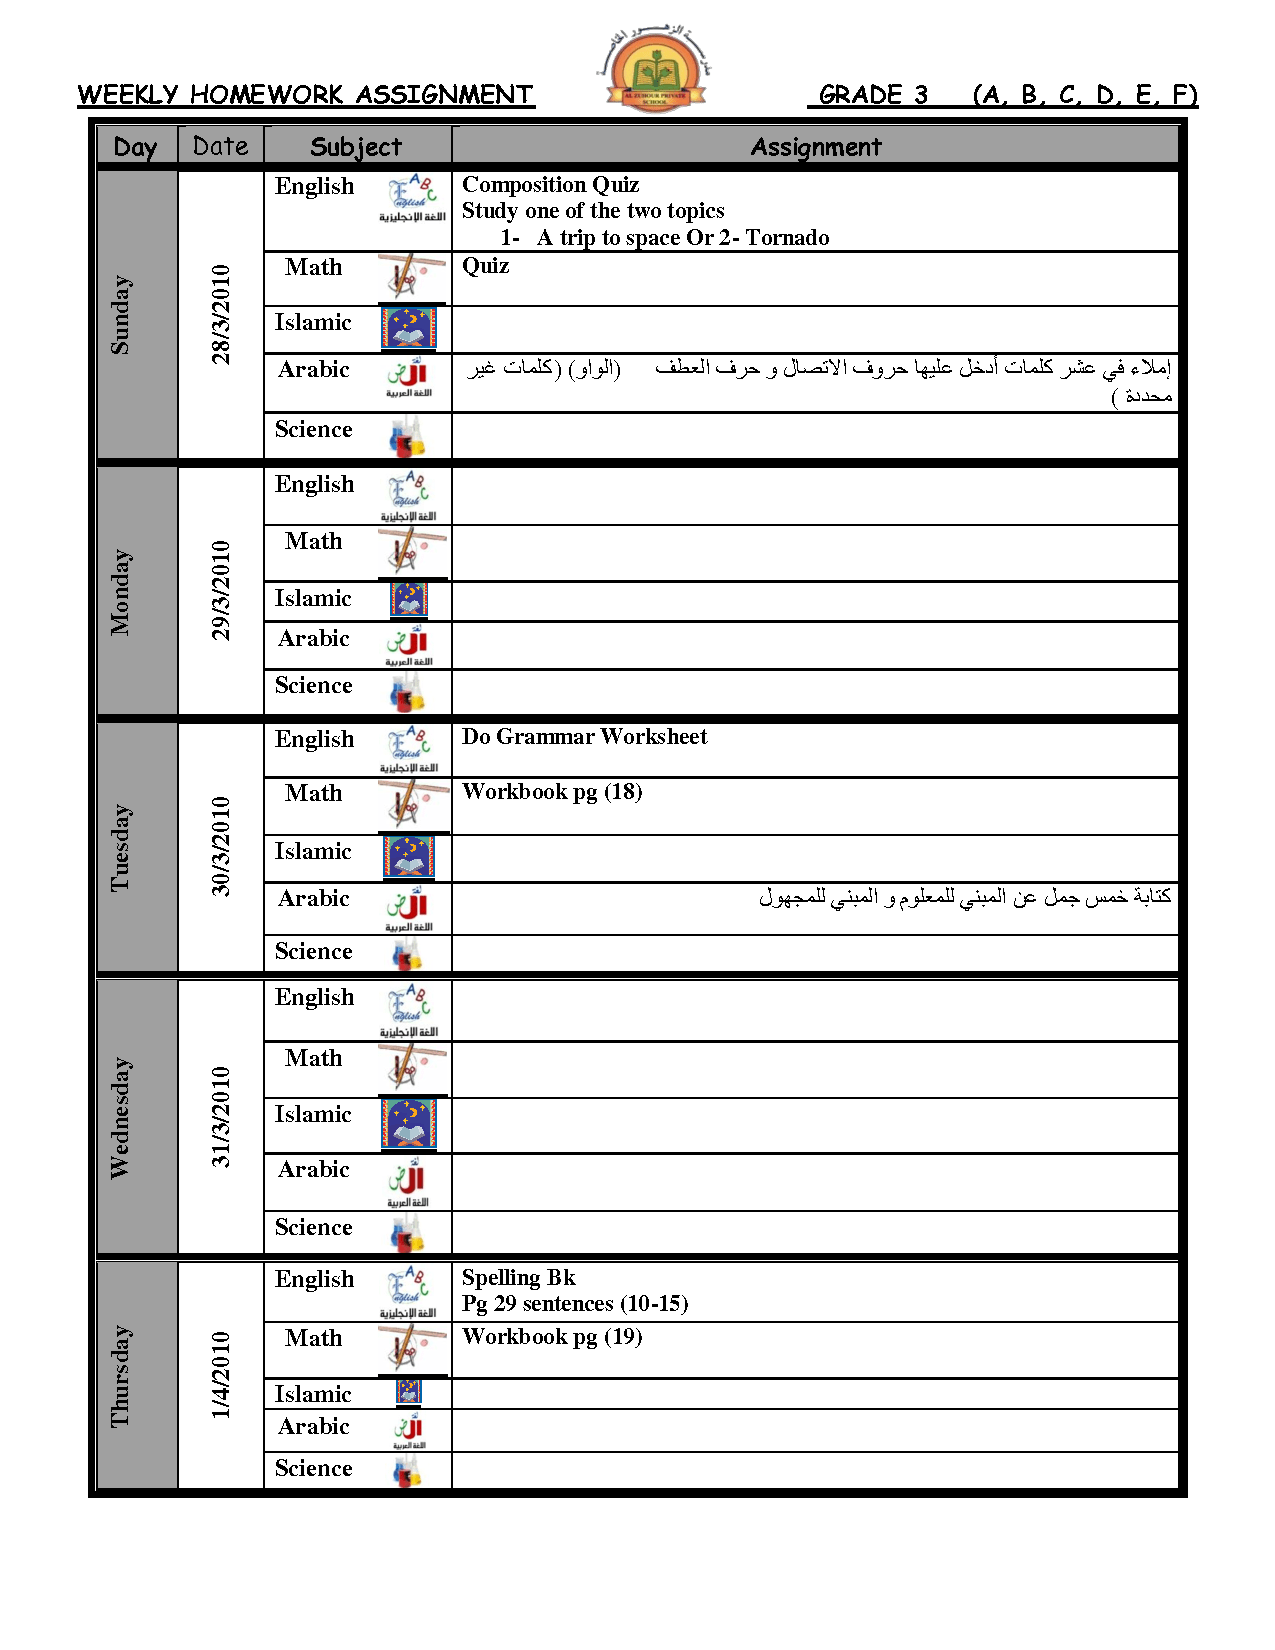 Printable Daily Homework Assignment Sheet